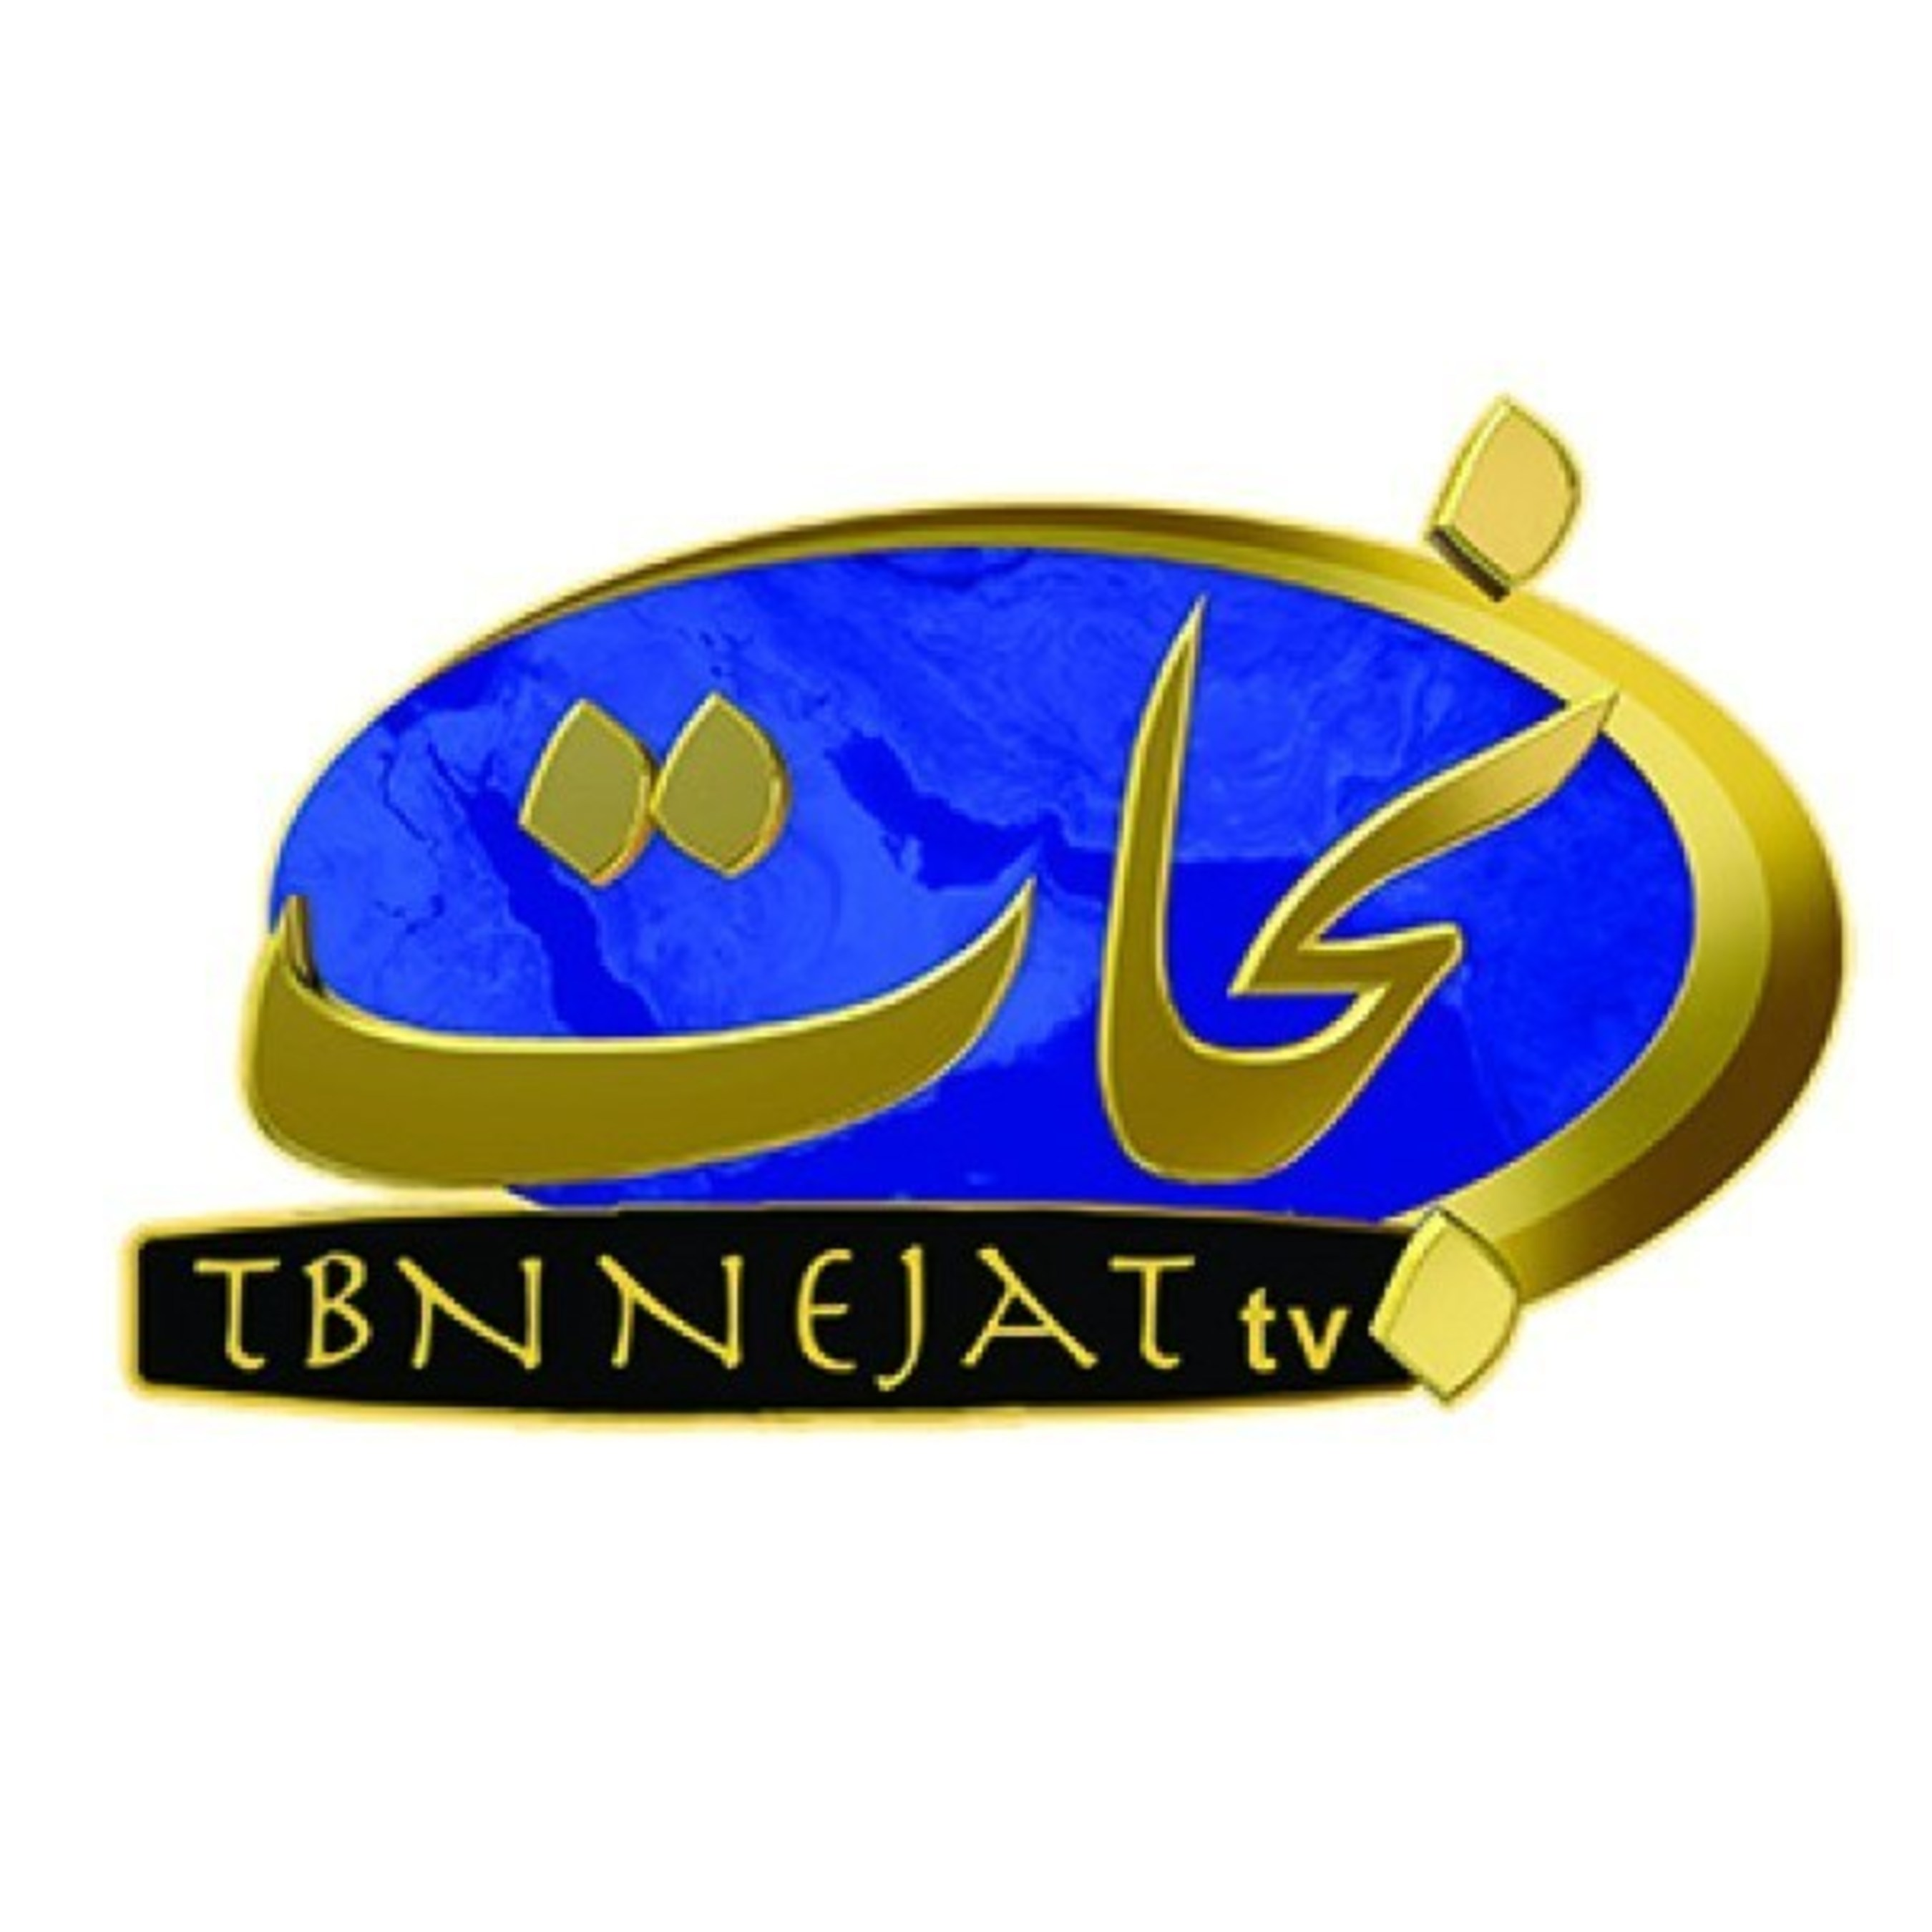 TBN Nejat Television Takes Powerful Message of Hope to